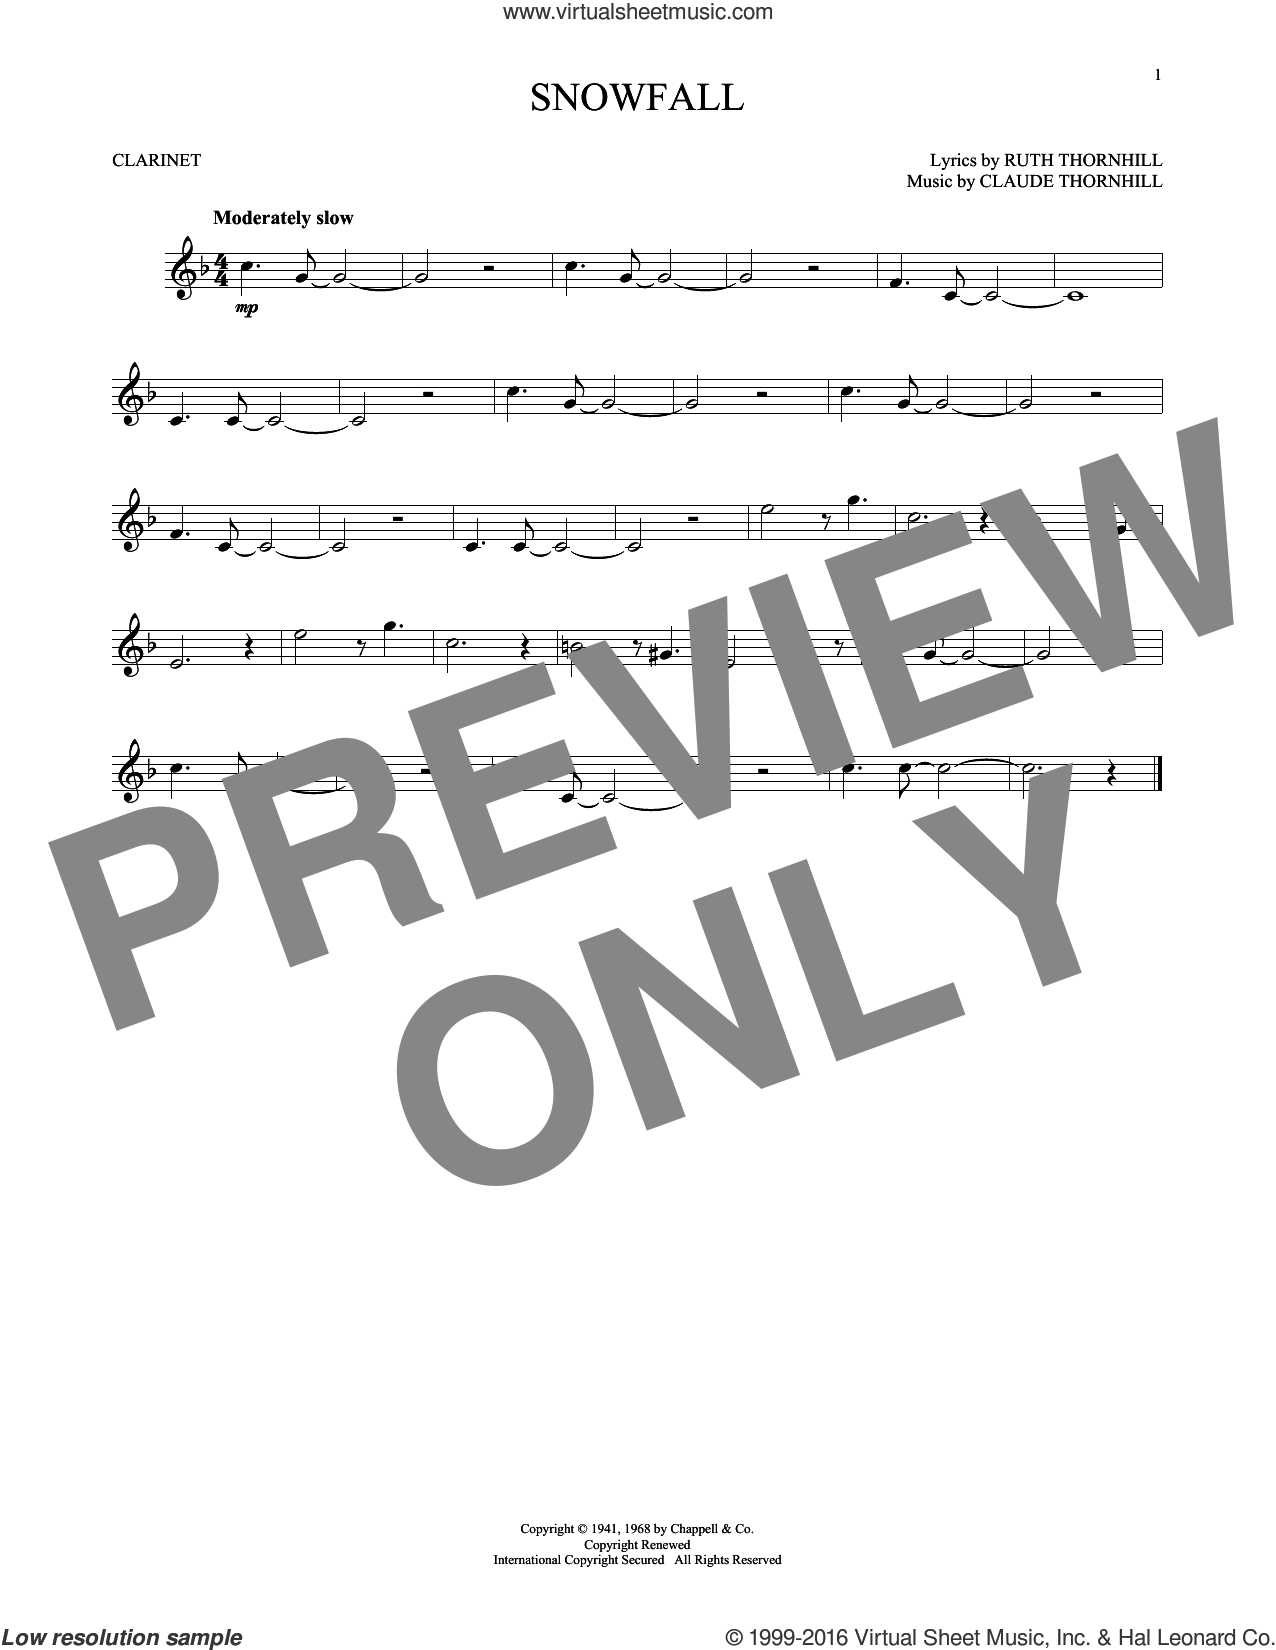 Snowfall sheet music for clarinet solo by Claude Thornhill, Tony Bennett, Claude & Ruth Thornhill and Ruth Thornhill, intermediate skill level